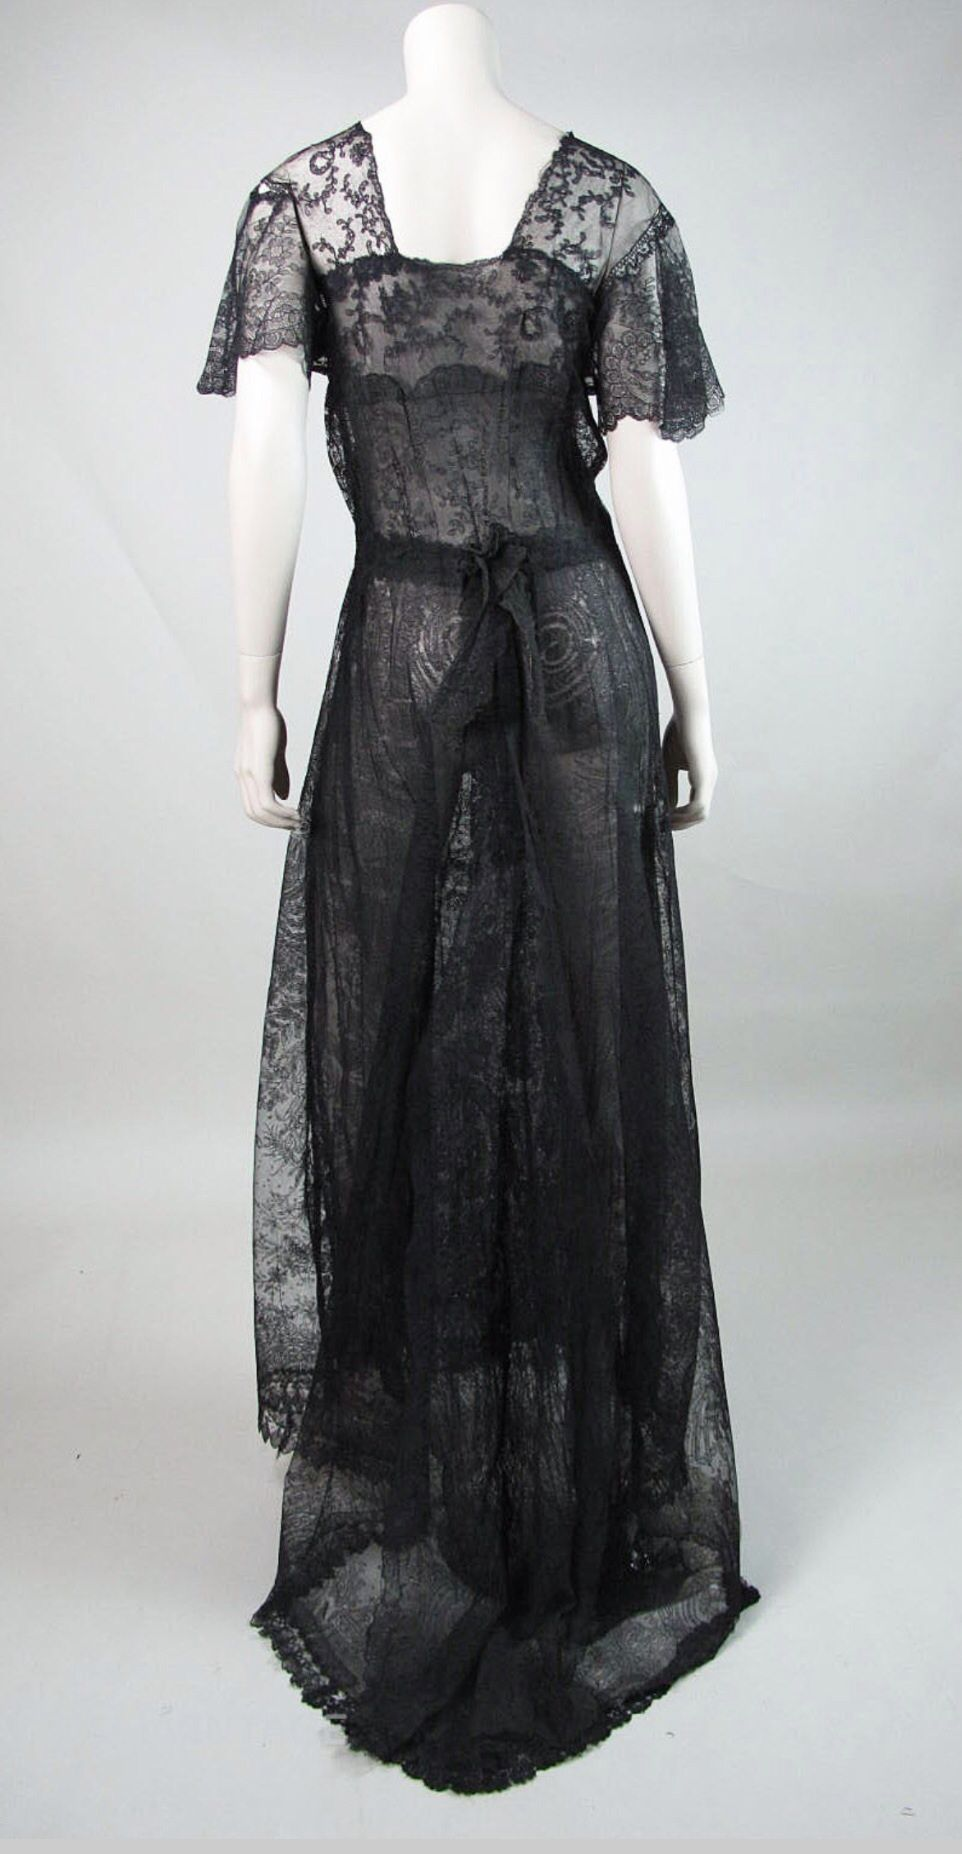 4a40ad87bcc Black lace Edwardian dress with train